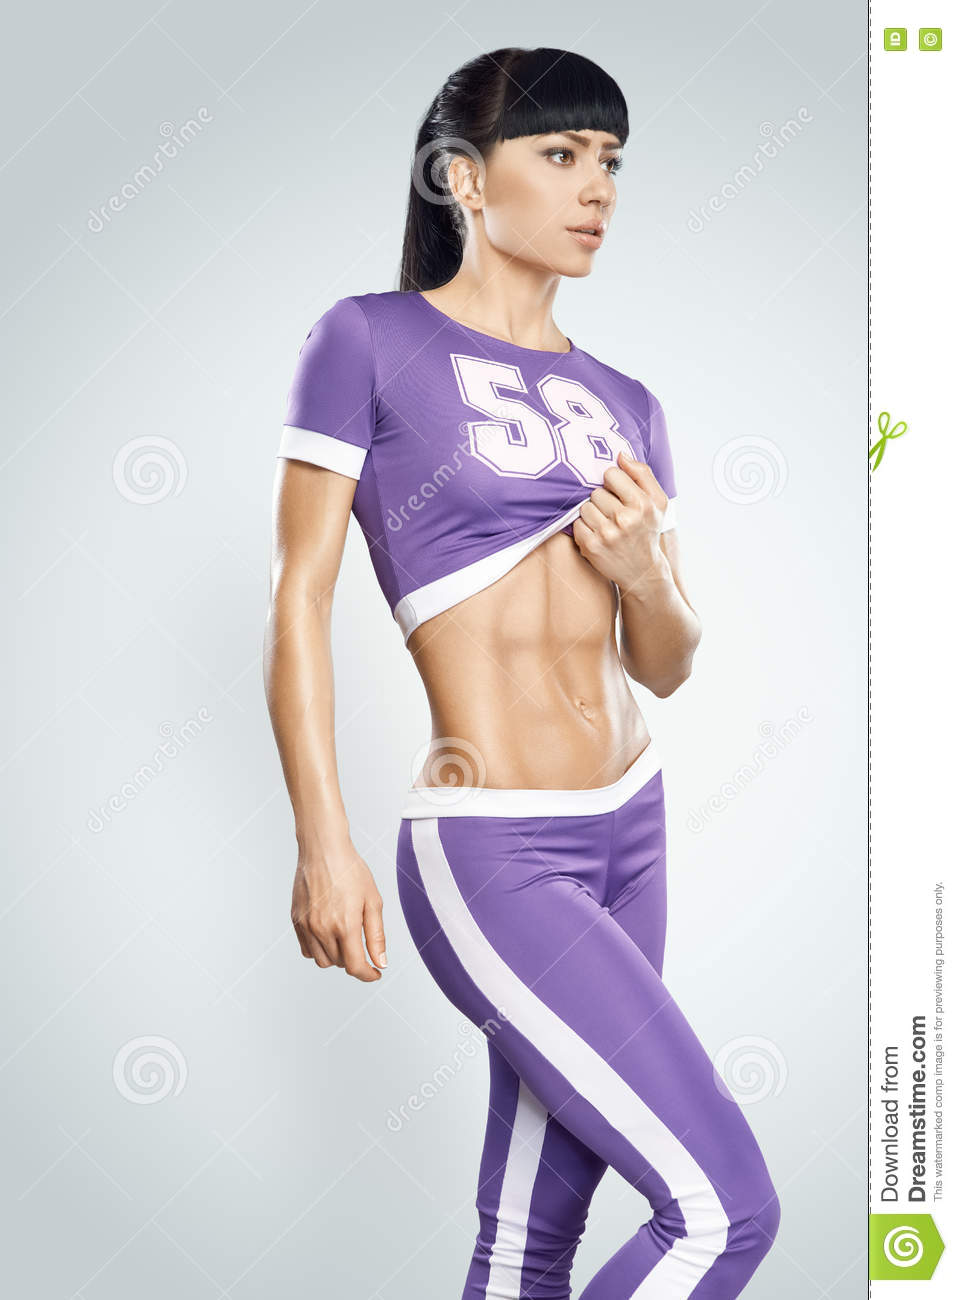 Fitness Athletic Young Woman Stock Photo - Image: 74216566